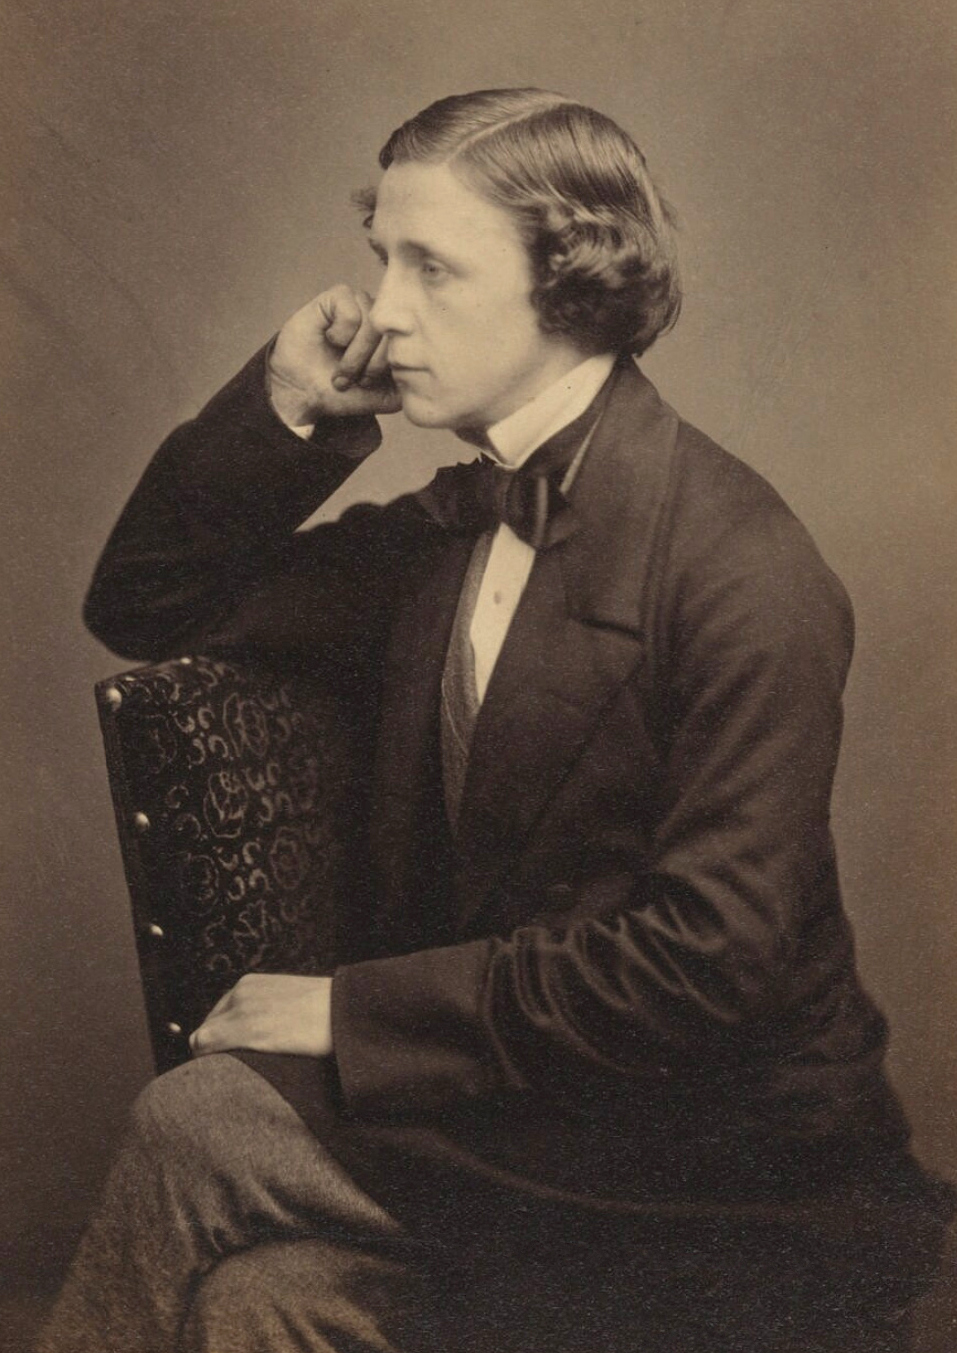 Lewis Carroll - Wikipedia